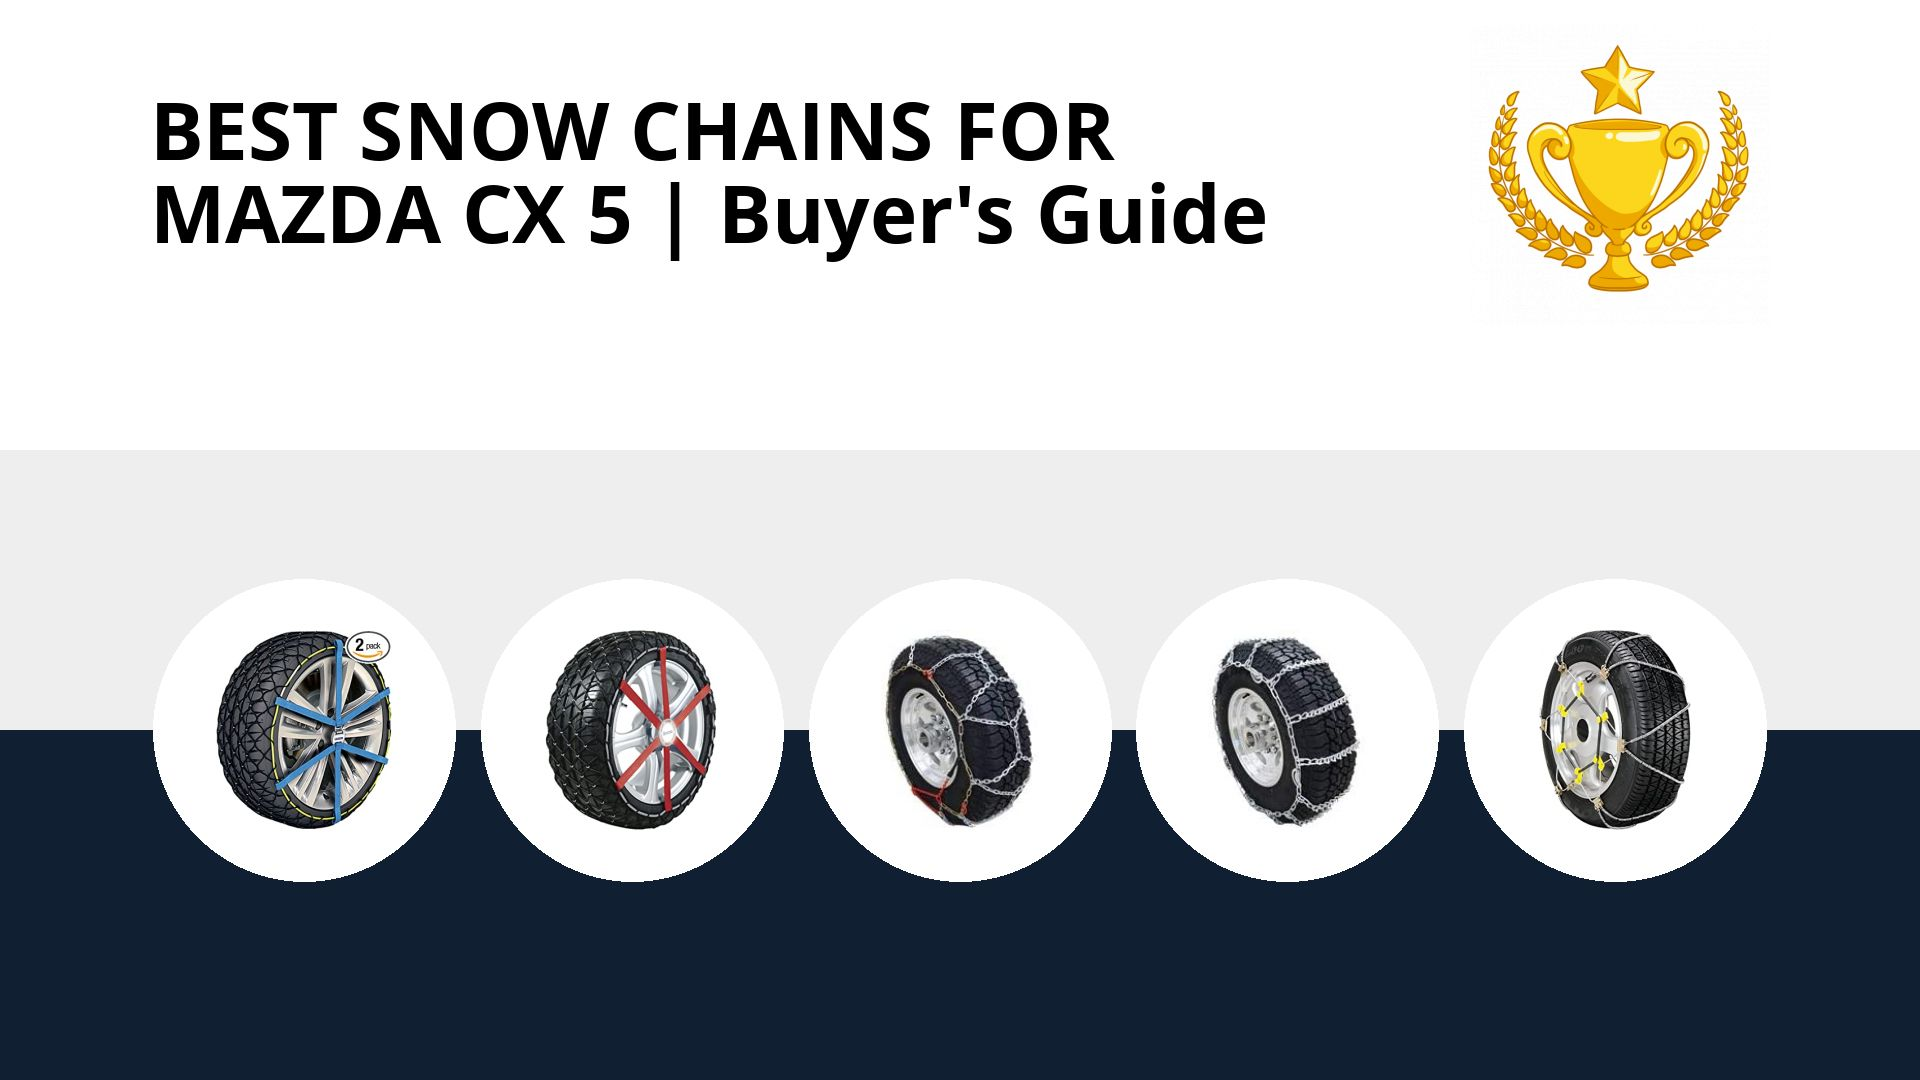 Best Snow Chains For Mazda Cx 5: image